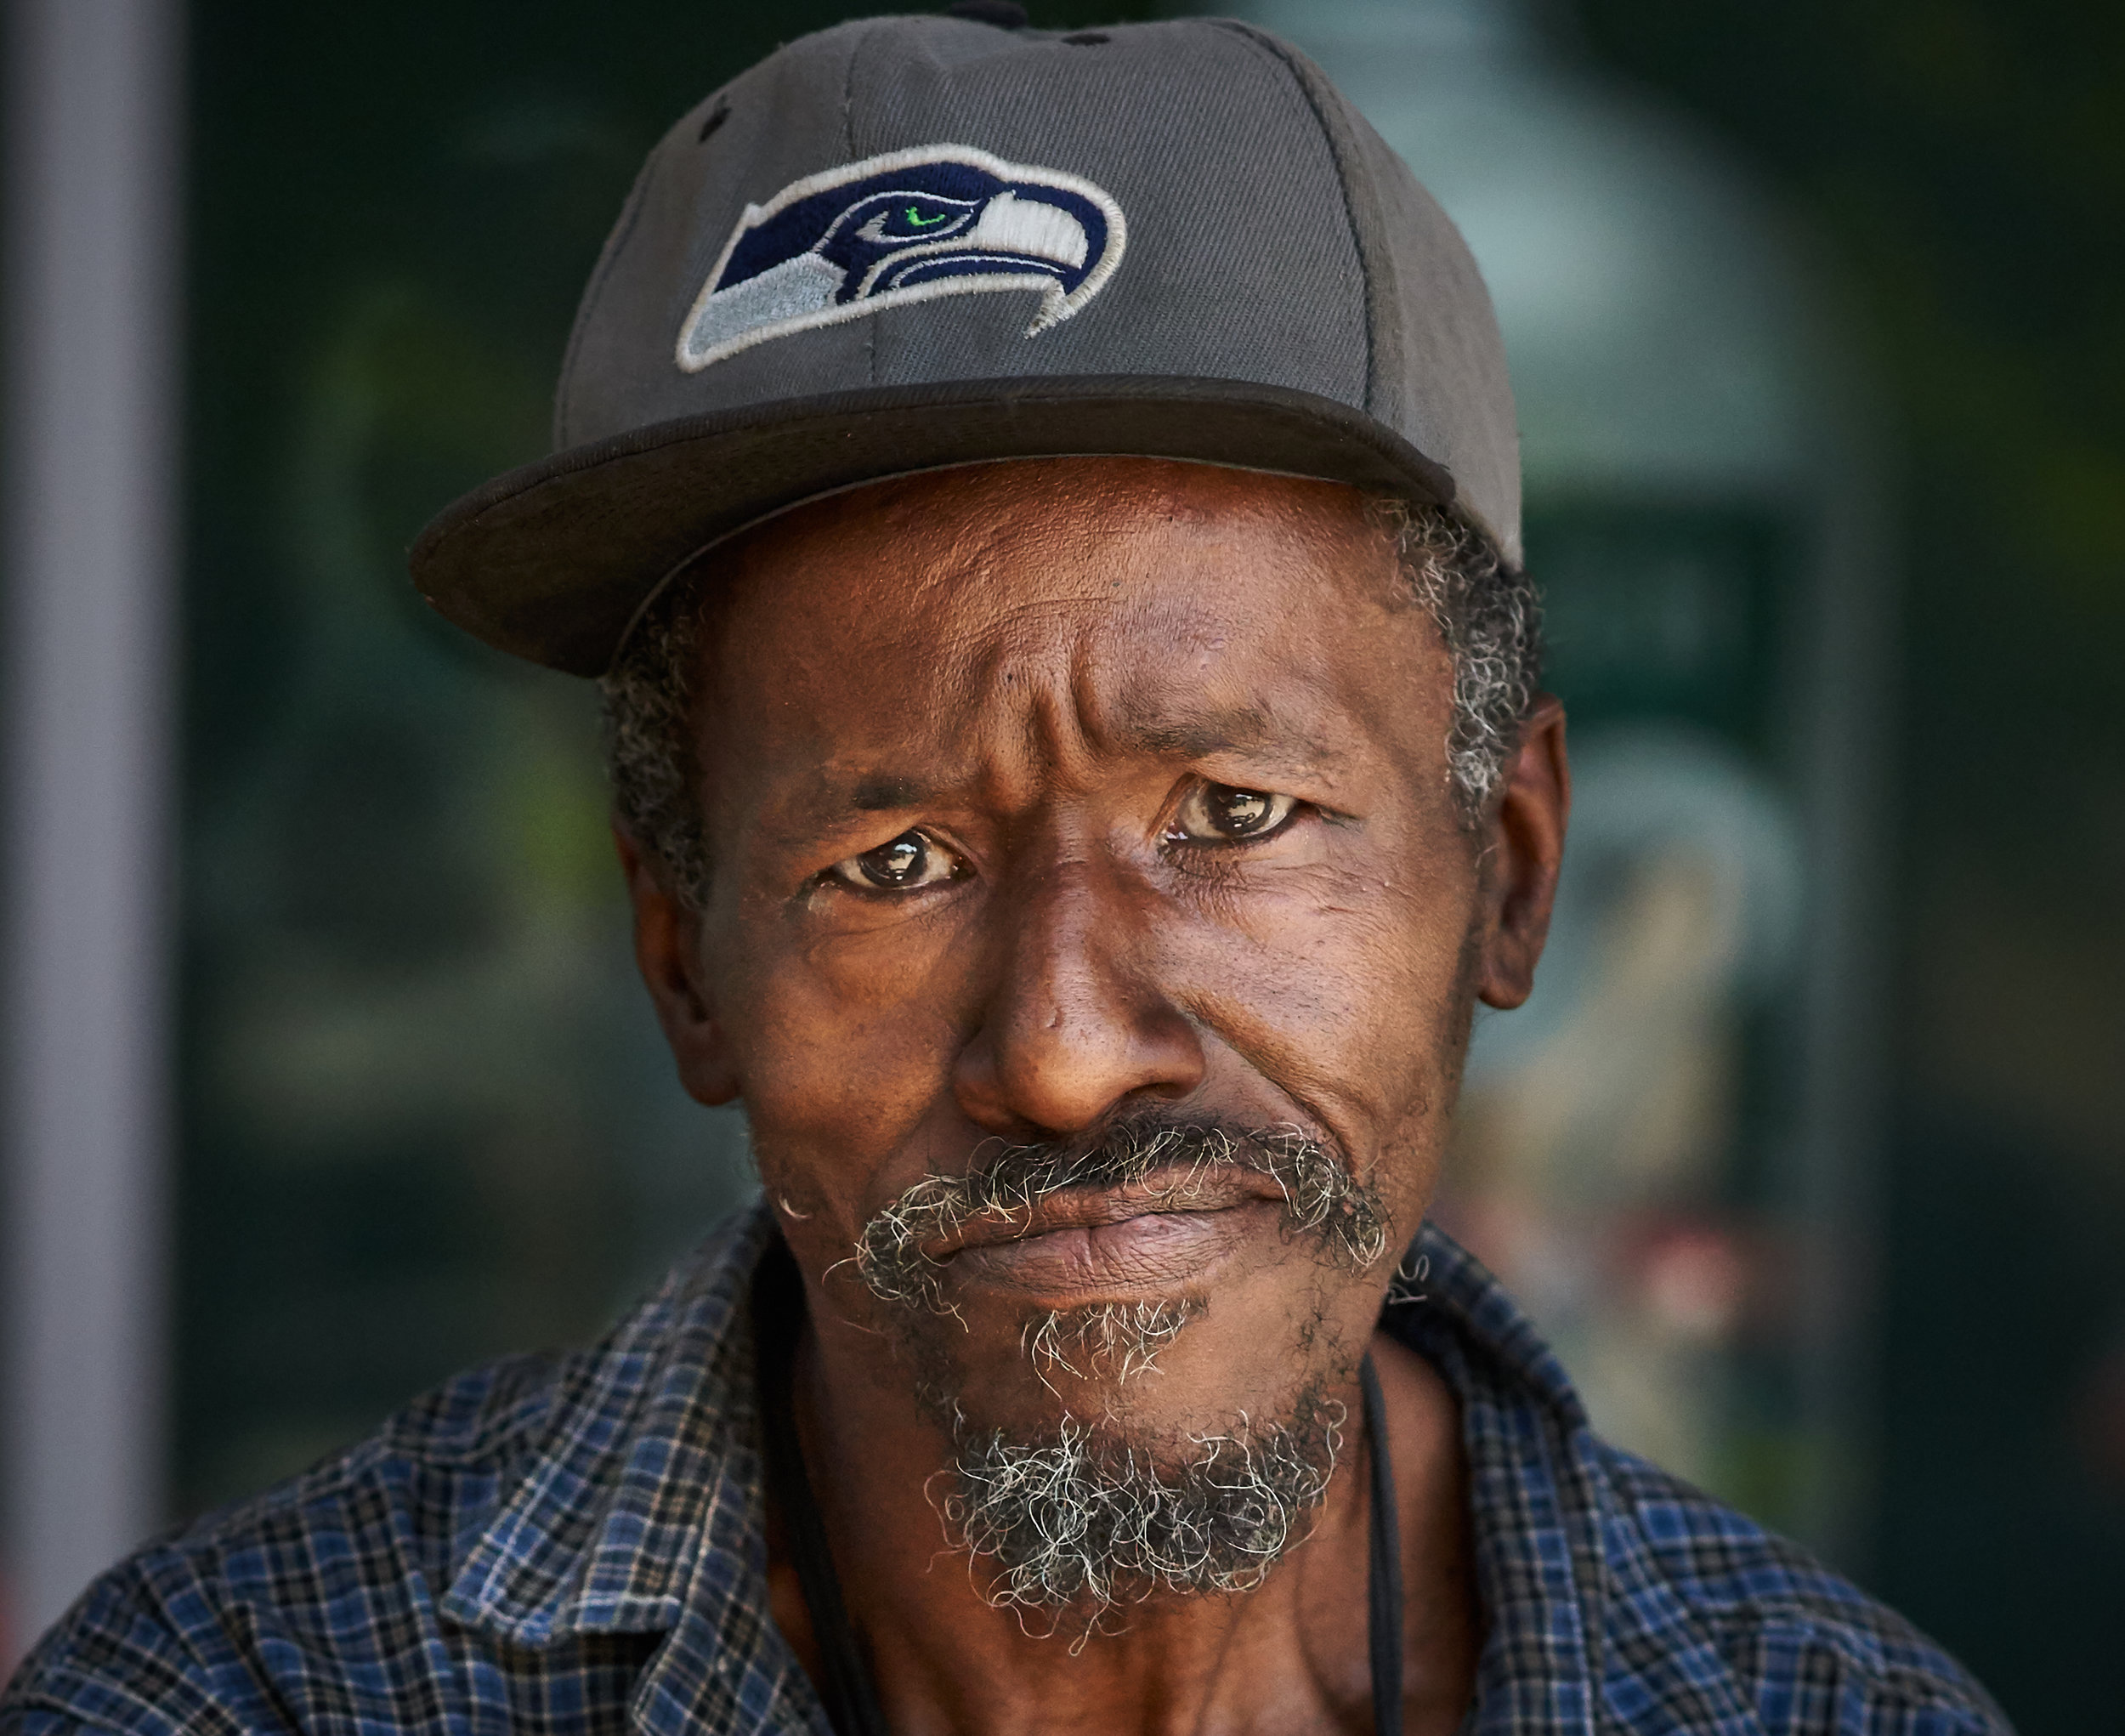 "Meet Larry, he is a local Real Change vendor who has been here since 1981, he moved from Texas here to Seattle. I sat down with Larry and had a discussion with him about his life and the heat that Seattle is experiencing at the moment. I personally prefer the heat, and we had a laugh about him being from Texas and how people like to complain about the heat in the Summer here. As you know it gets very hot in Texas. I asked him if he ever missed Texas and he said ""Everybody misses home from time to time."" Thanks for your time Larry and for doing what you do."